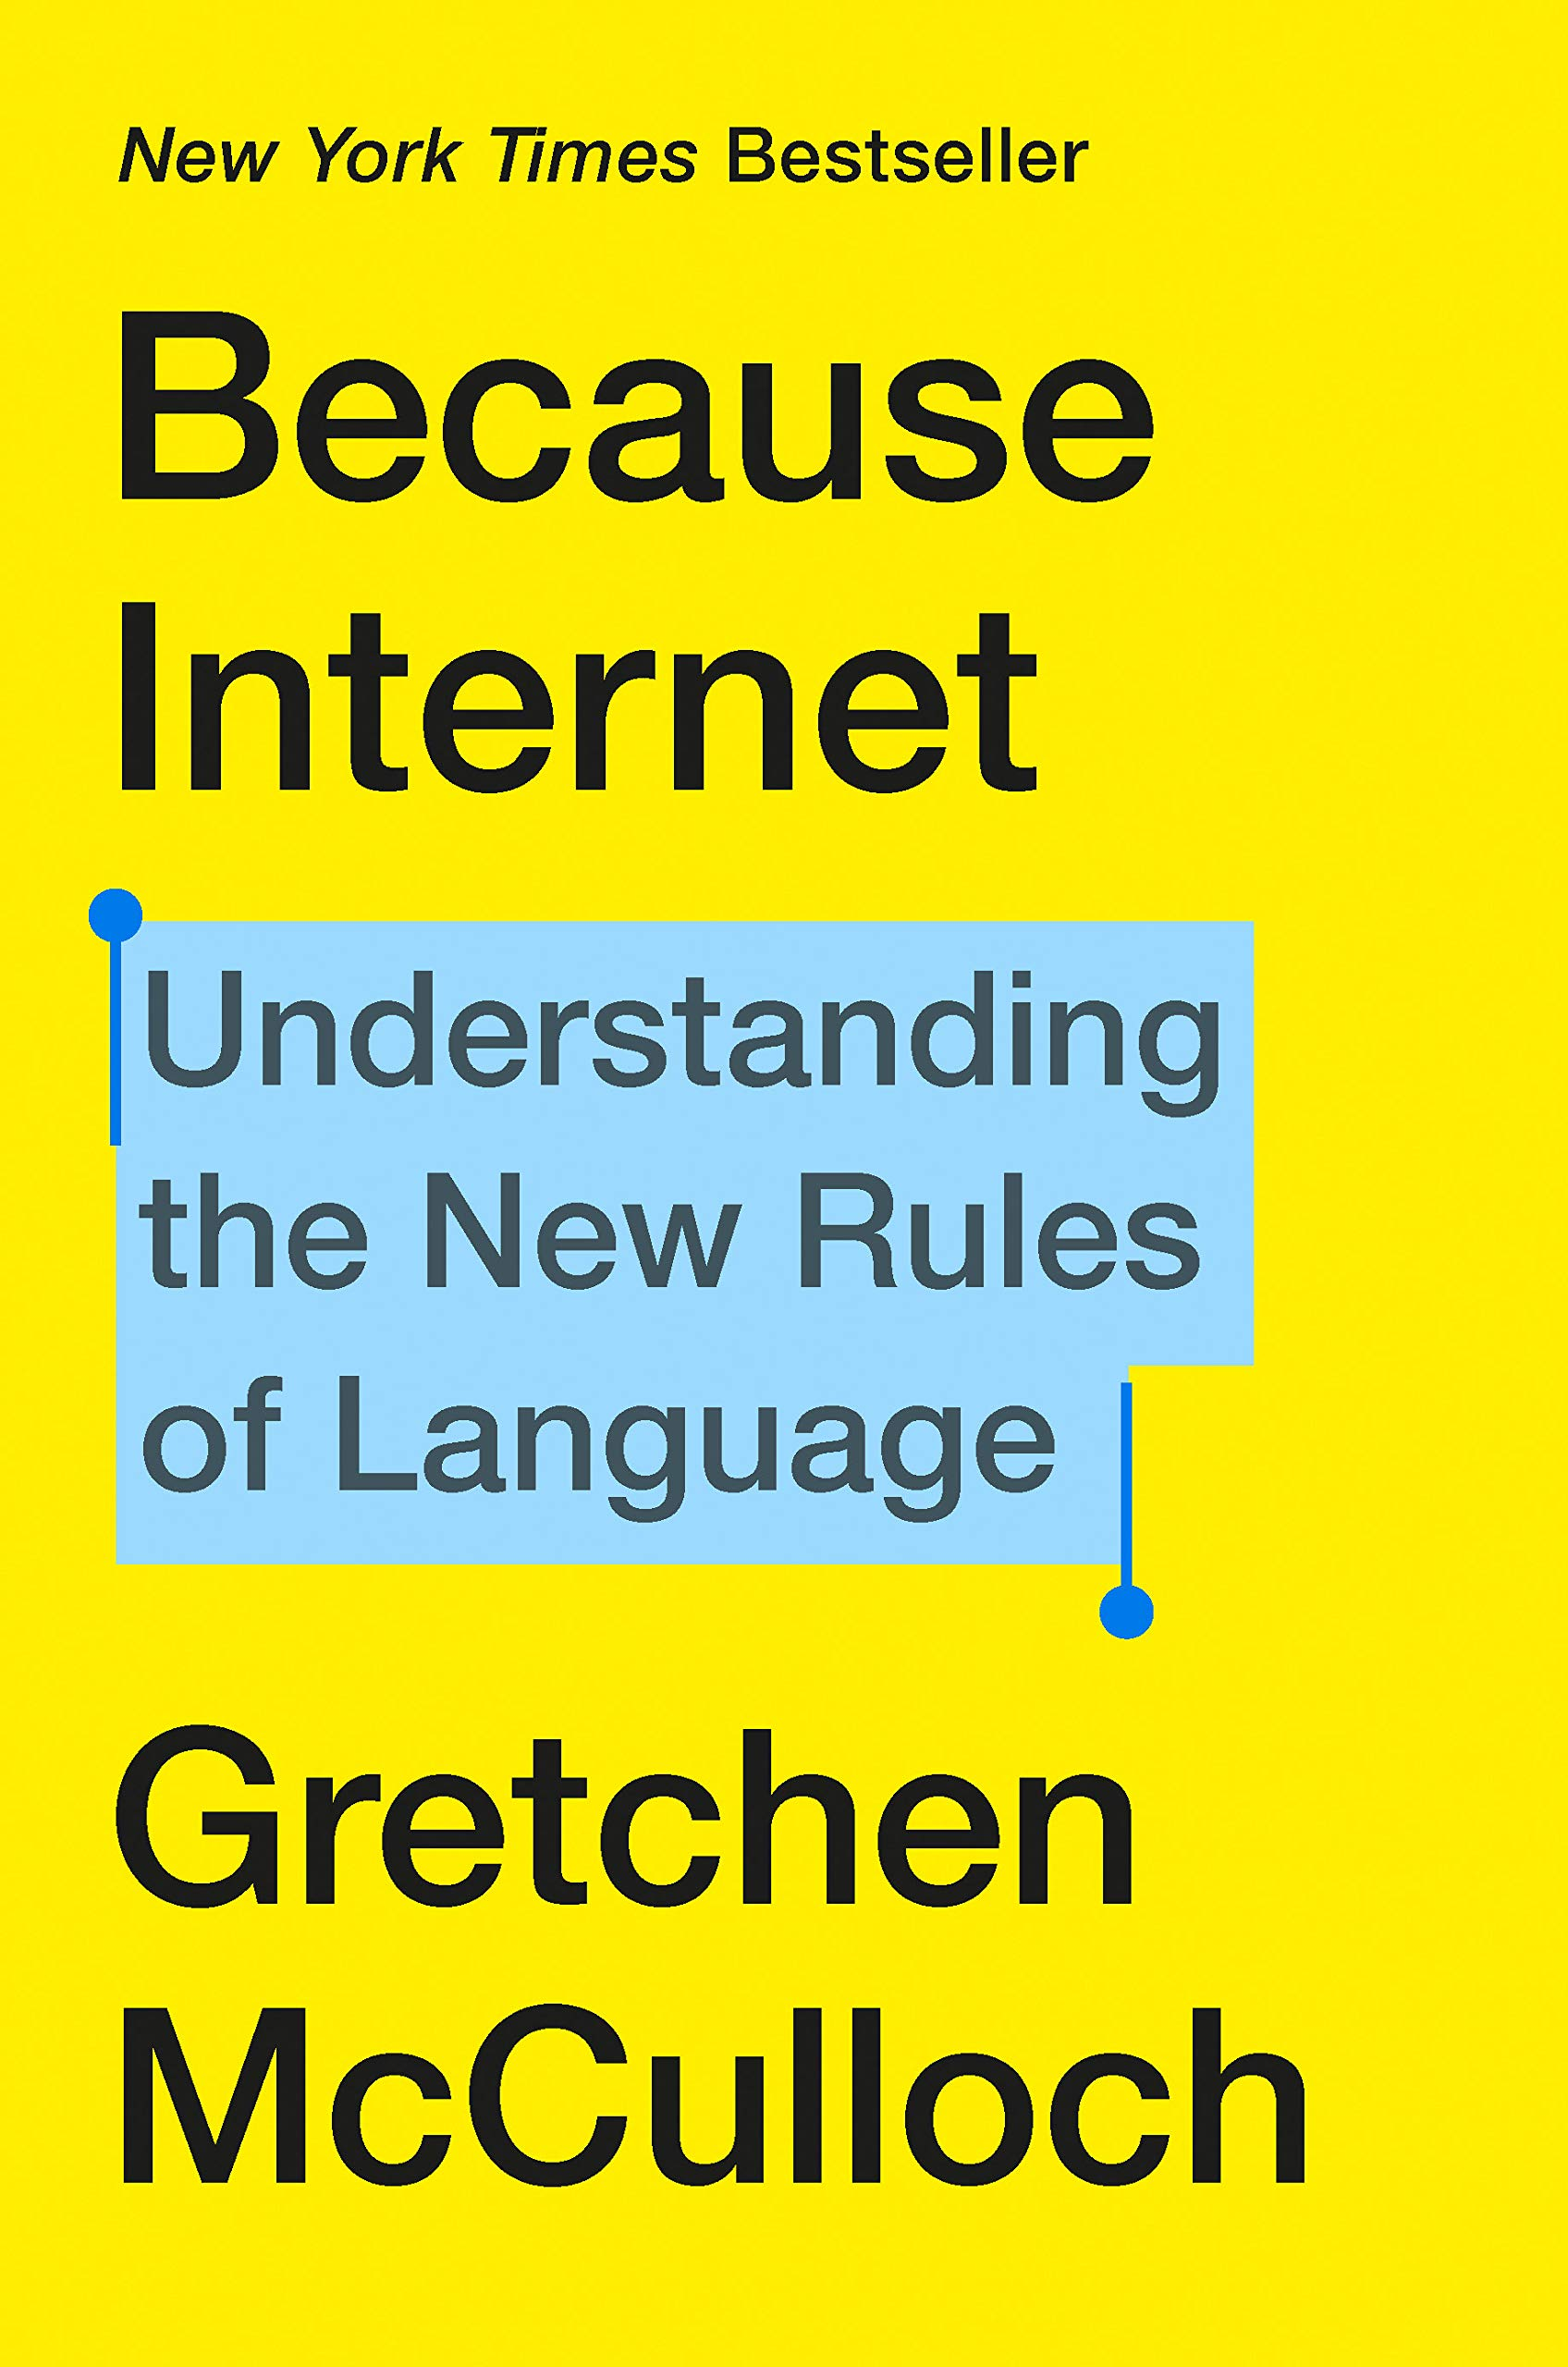 Review: Because Internet, Gretchen McCulloch